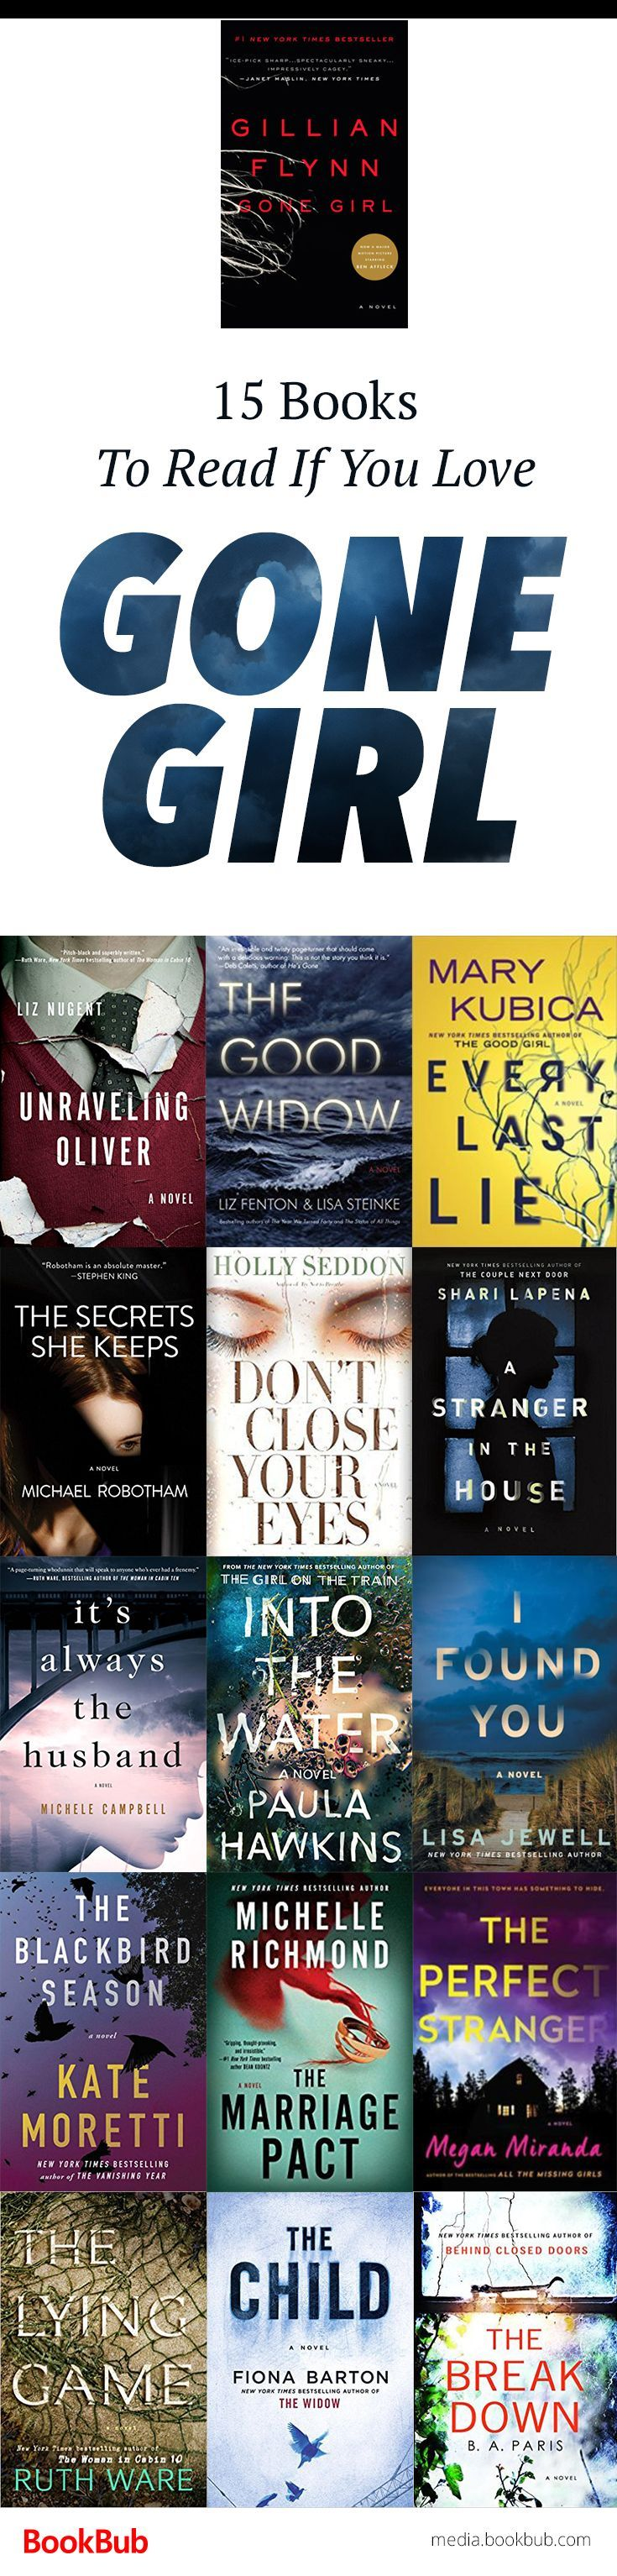 15 Books That Could Be This Summer's 'gone Girl'